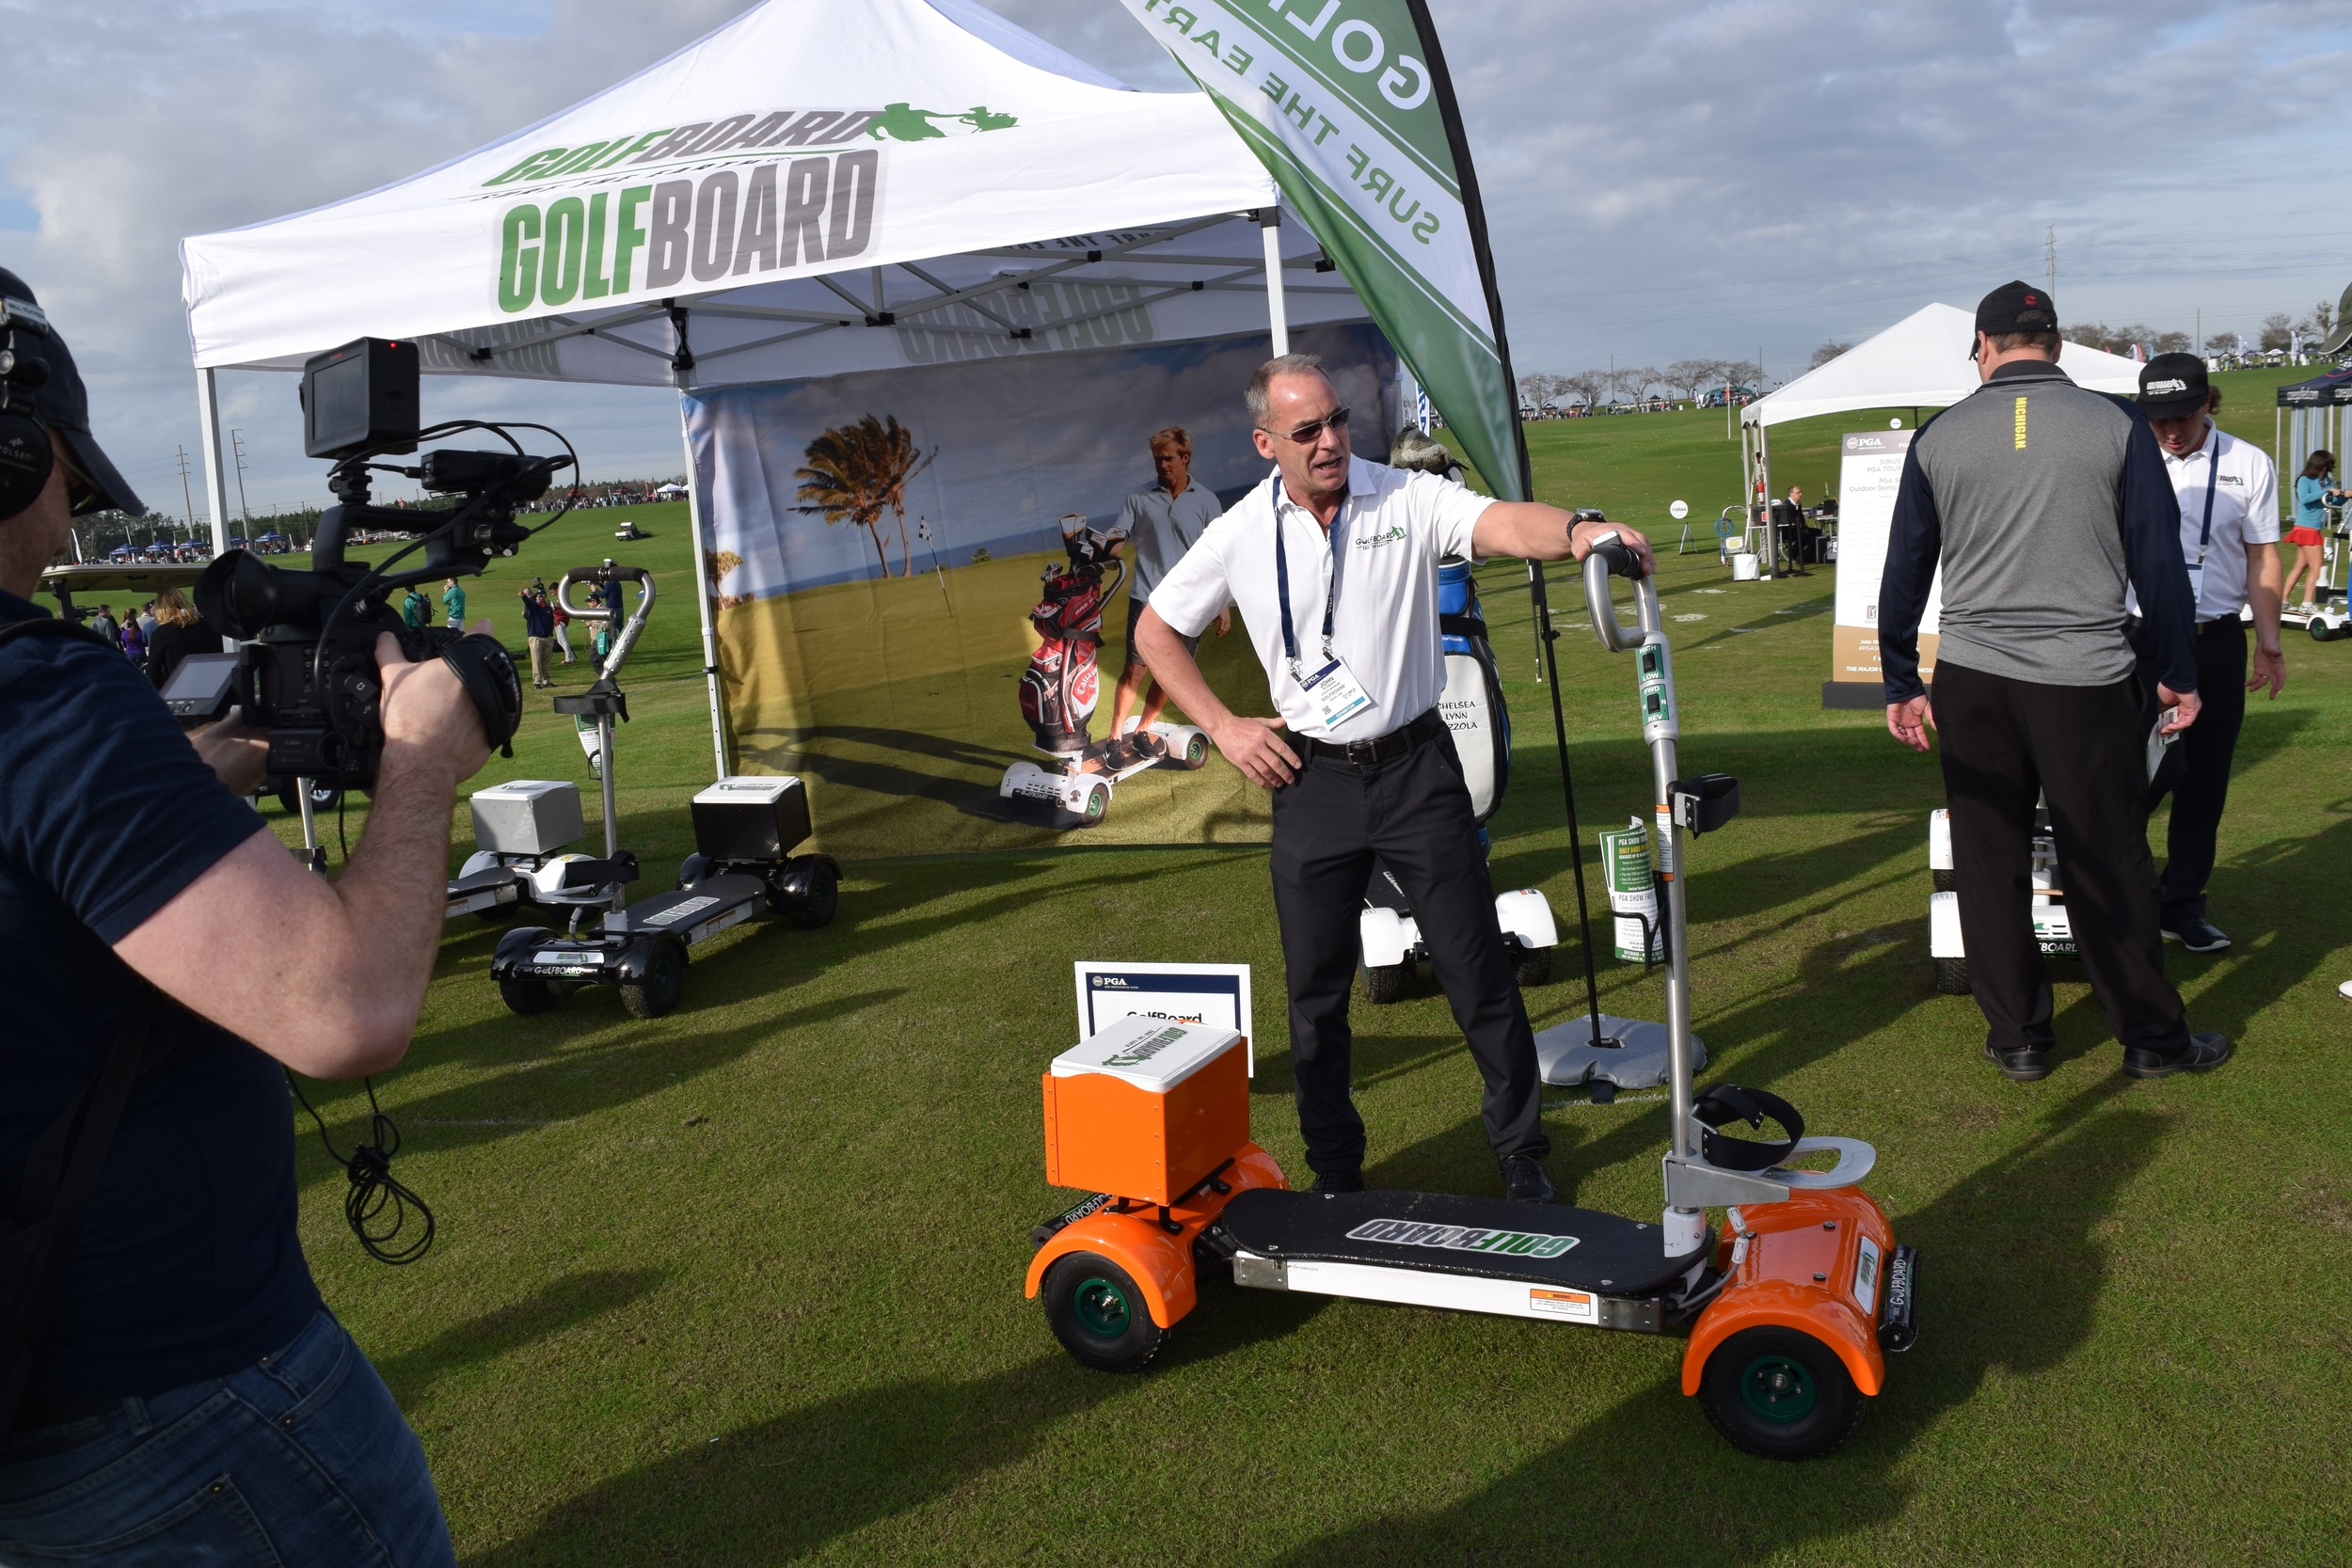 GolfBoard CEO John Wildman Demonstrates the GolfBoard for the cameras at Demo Day of the 2016 PGA Merchandise Show